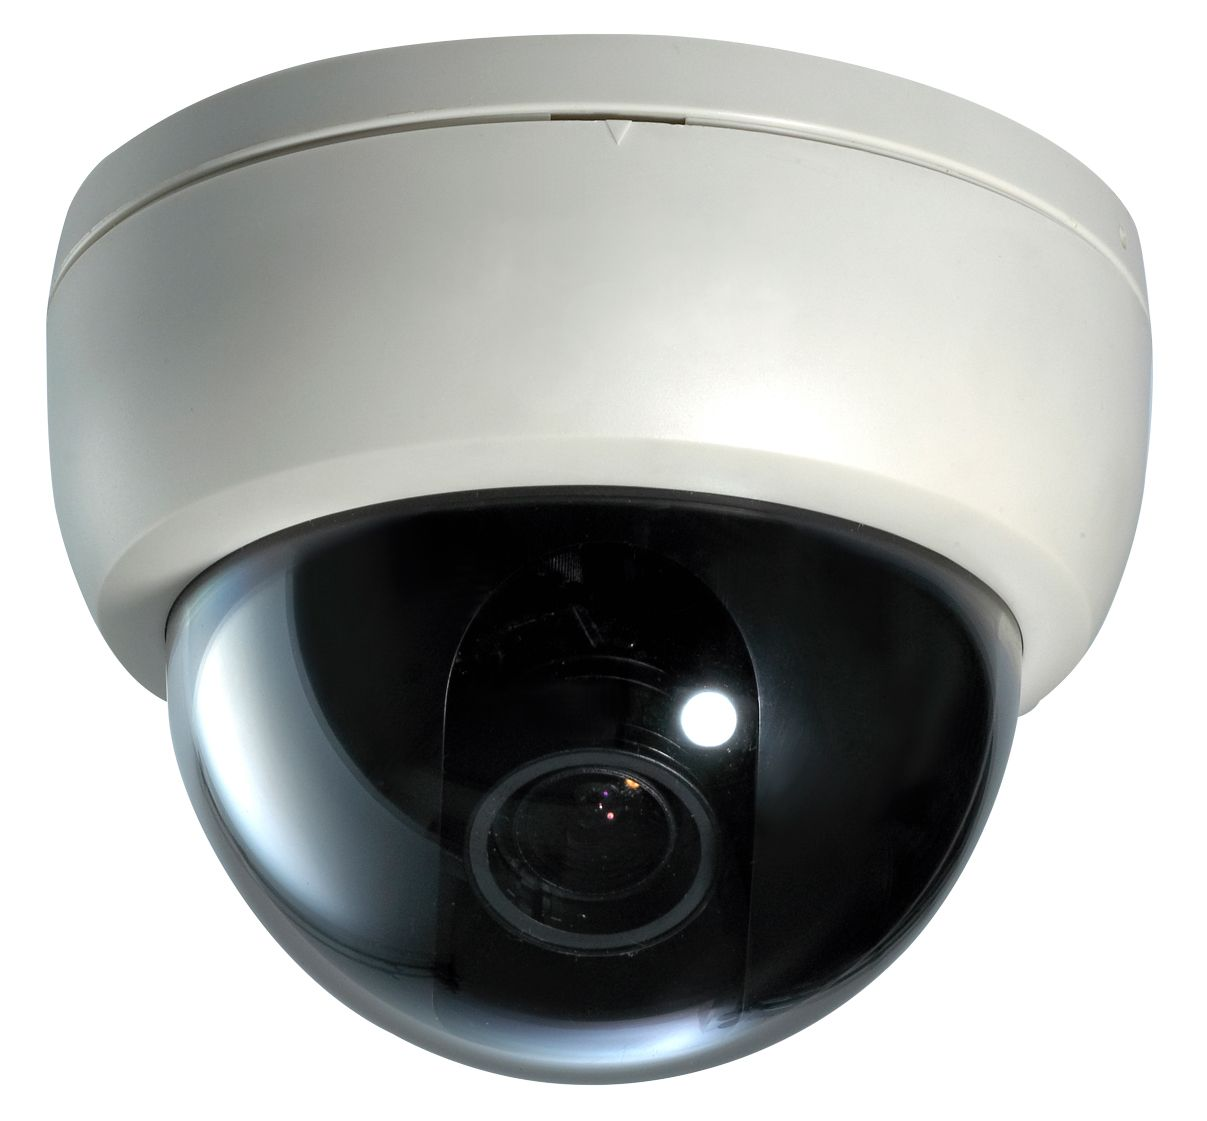 Get an exciting range of CCTV cameras directly from the dealers on ...